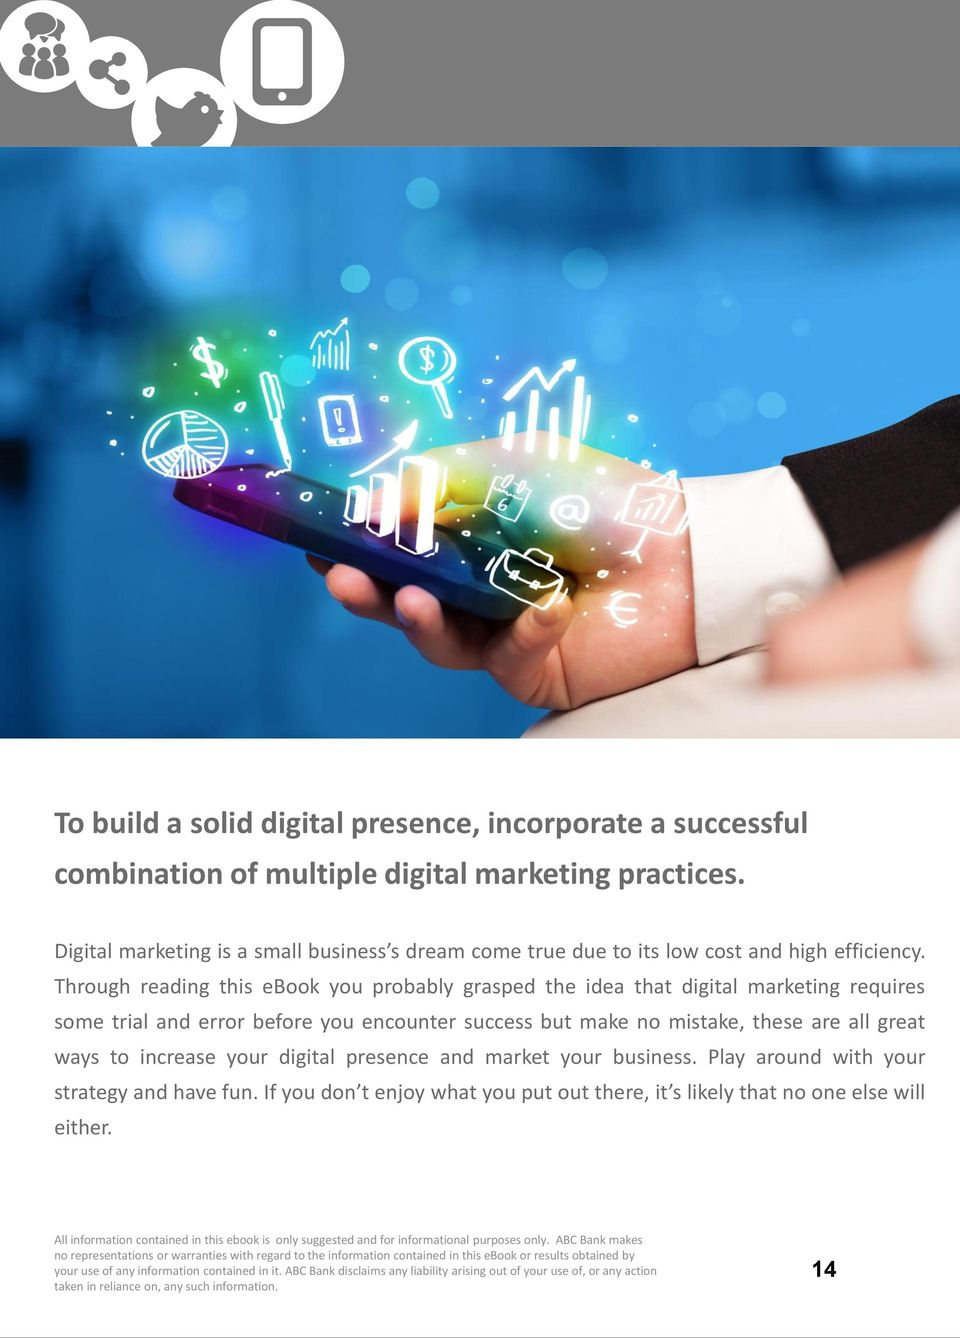 Through reading this ebook you probably grasped the idea that digital marketing requires some trial and error before you encounter success but make no mistake, these are all great ways to increase